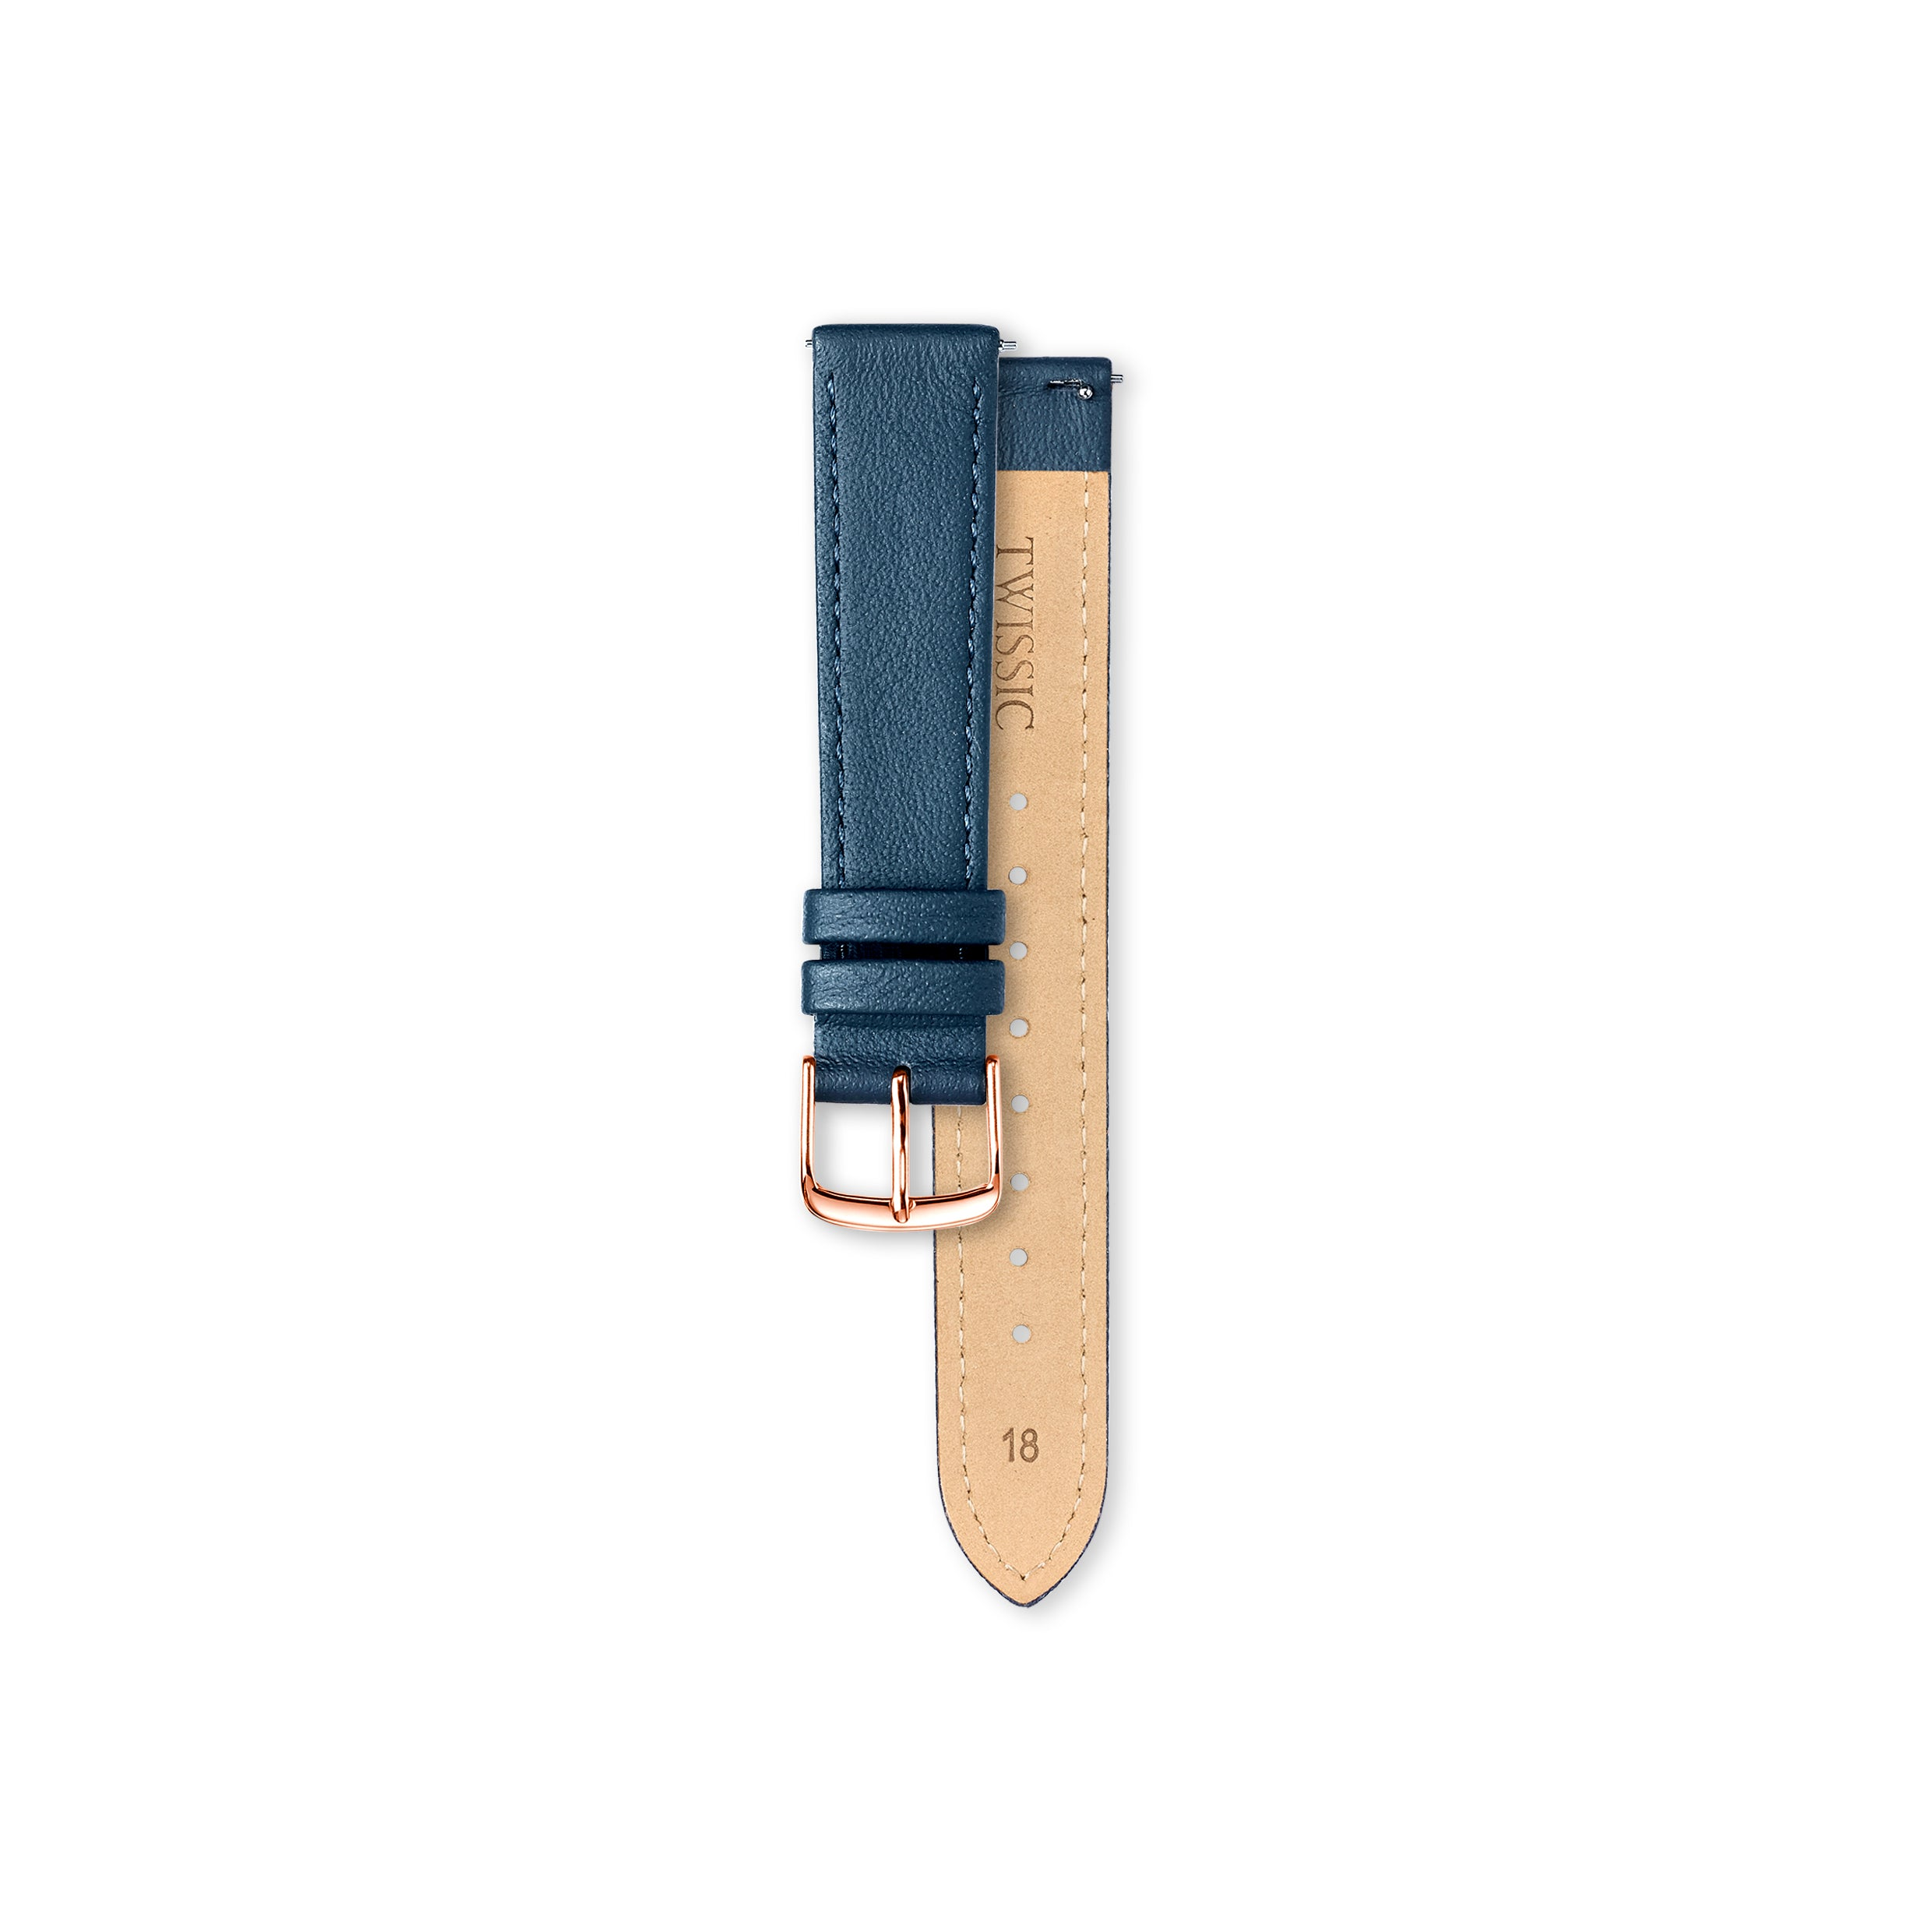 Gift set Medium (34mm/18mm) - Brick Red & Navy Straps